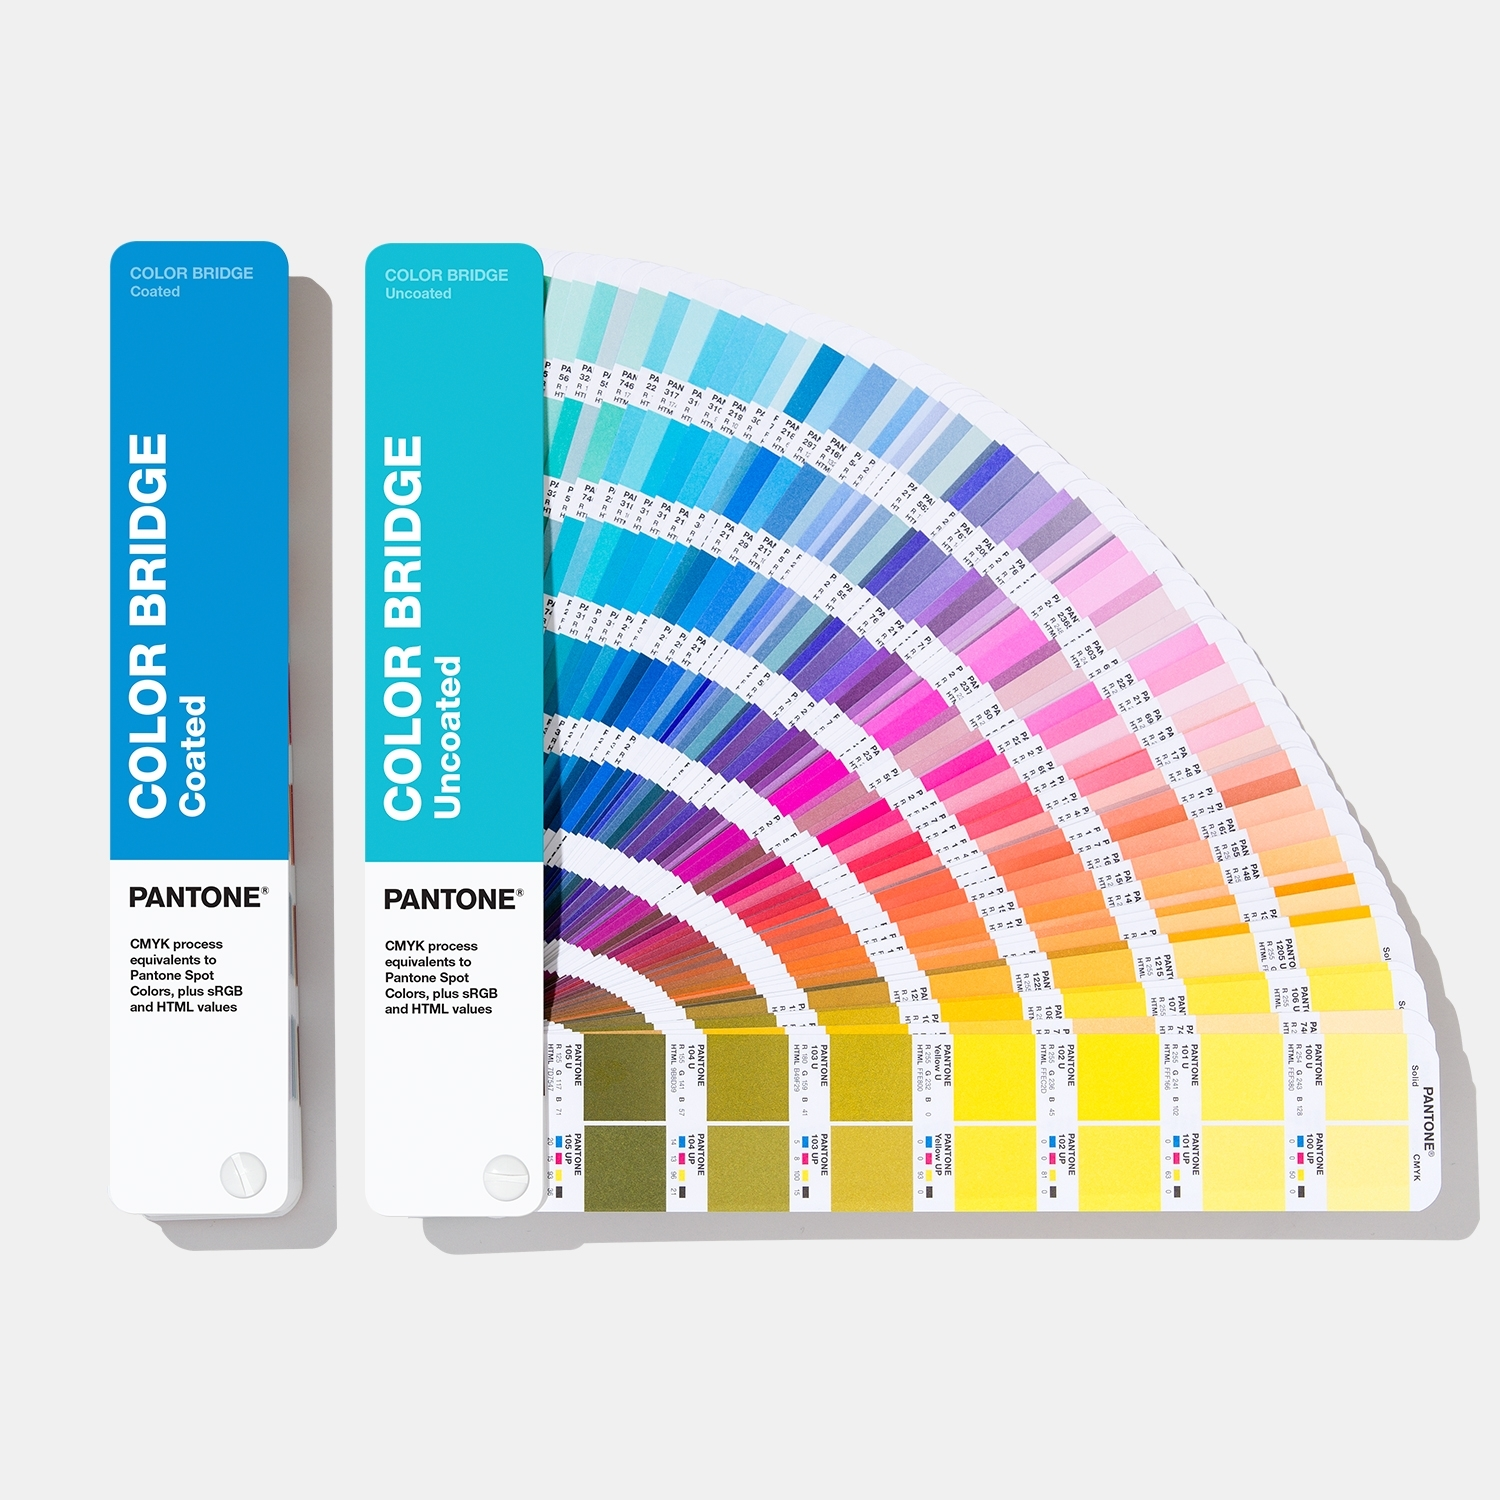 pantone color bridge coated view 1 - Color Code Book